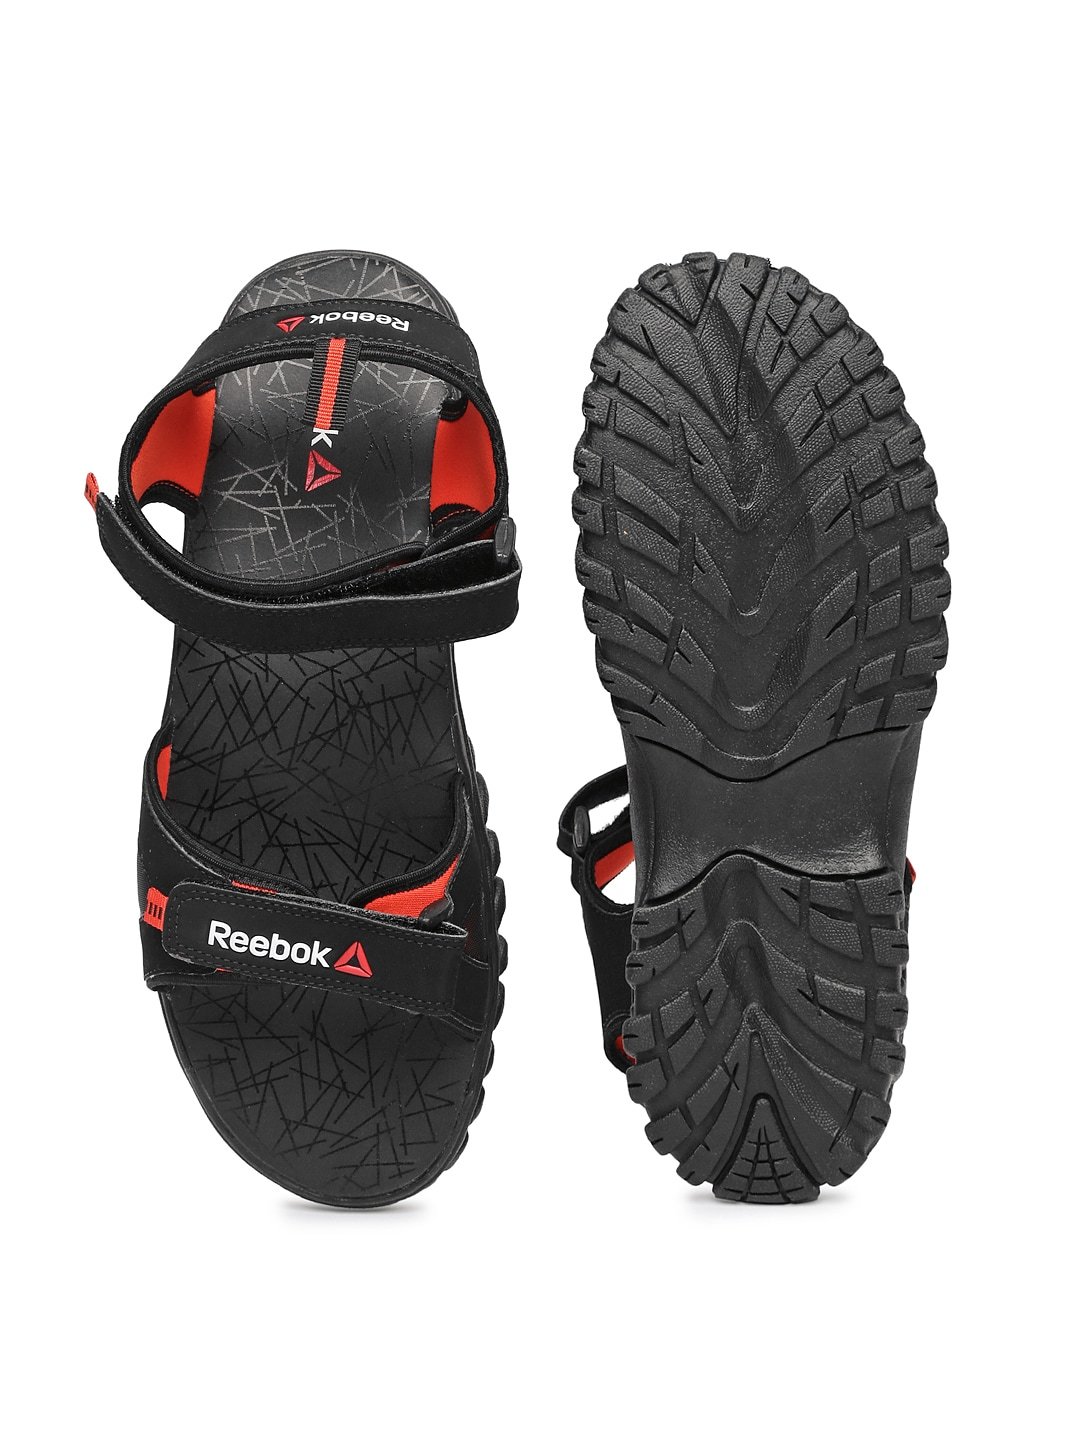 reebok sandals price list cheap   OFF55% The Largest Catalog Discounts 1d6483a8c